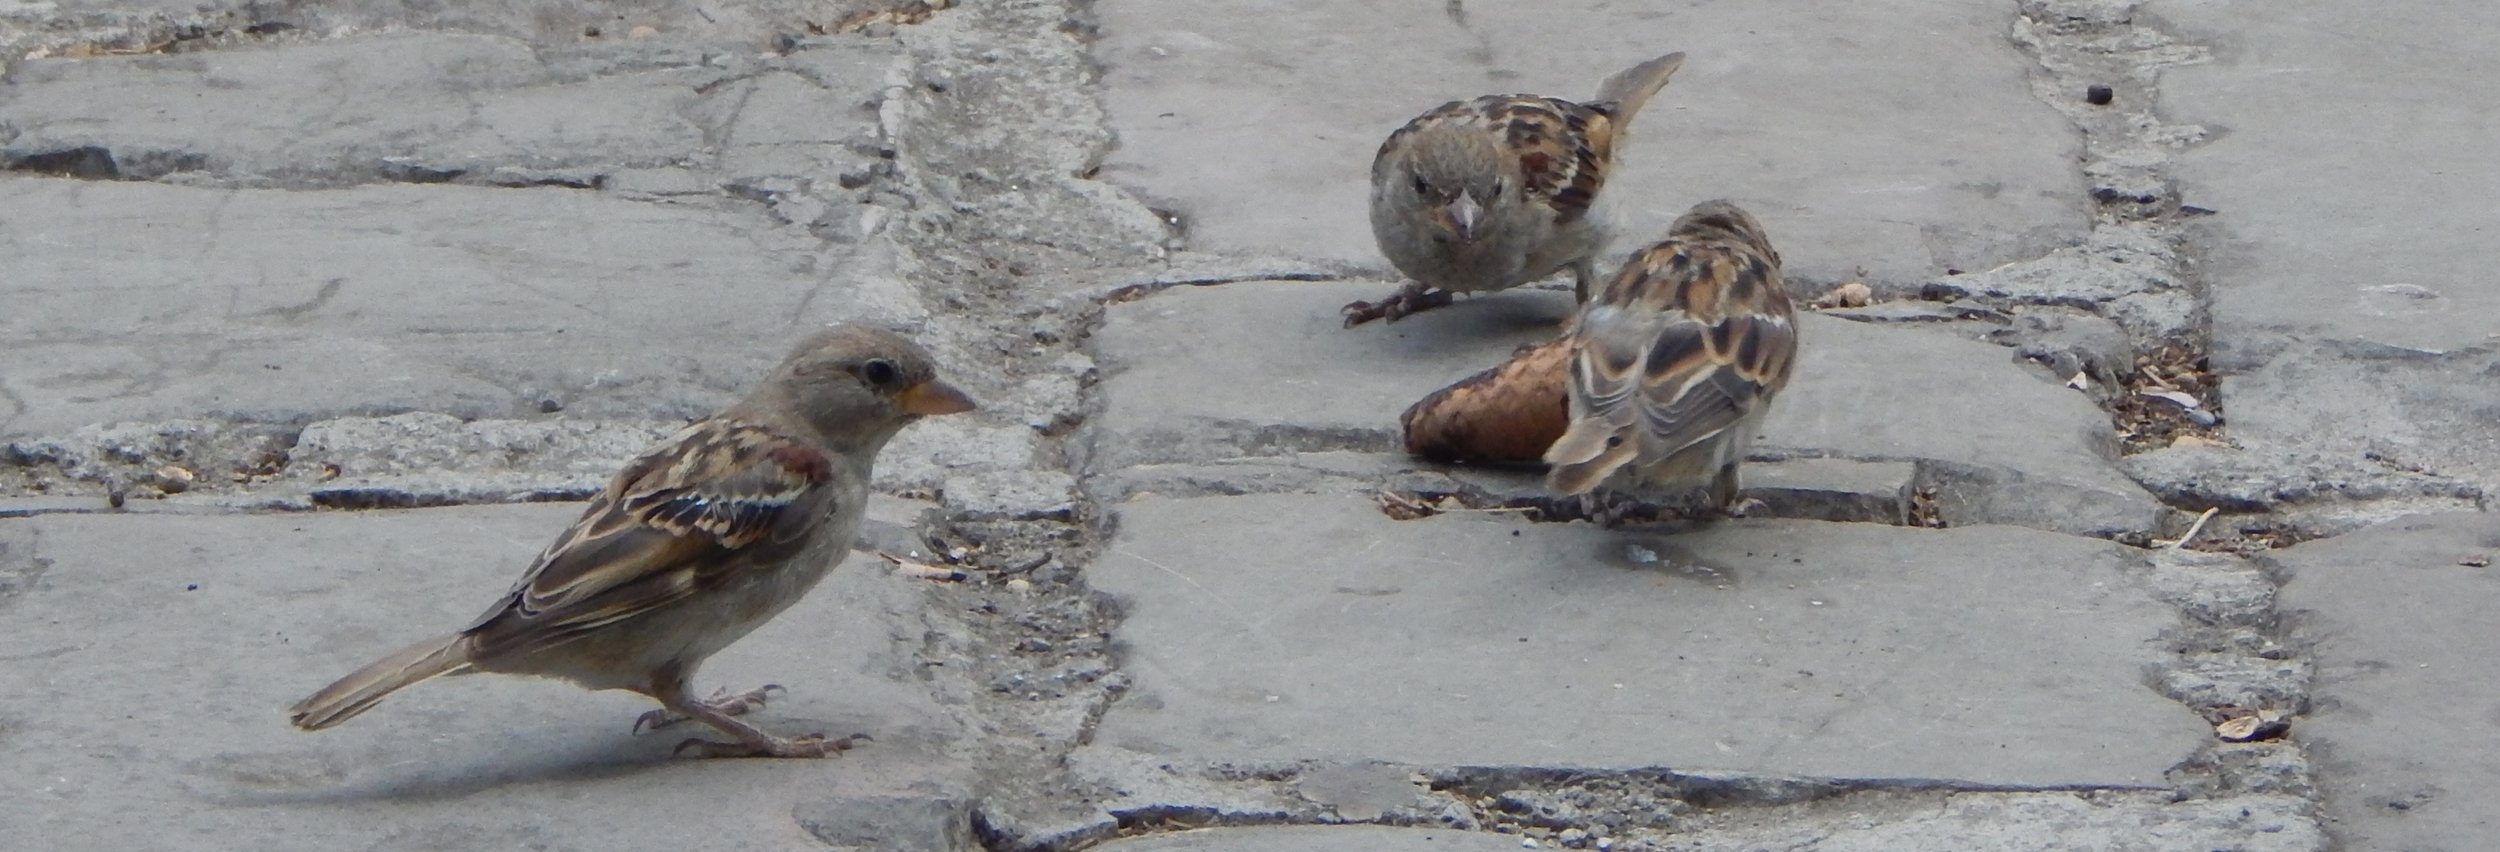 House Sparrows - Dubrovnik, Croatia. Eating ice cream?